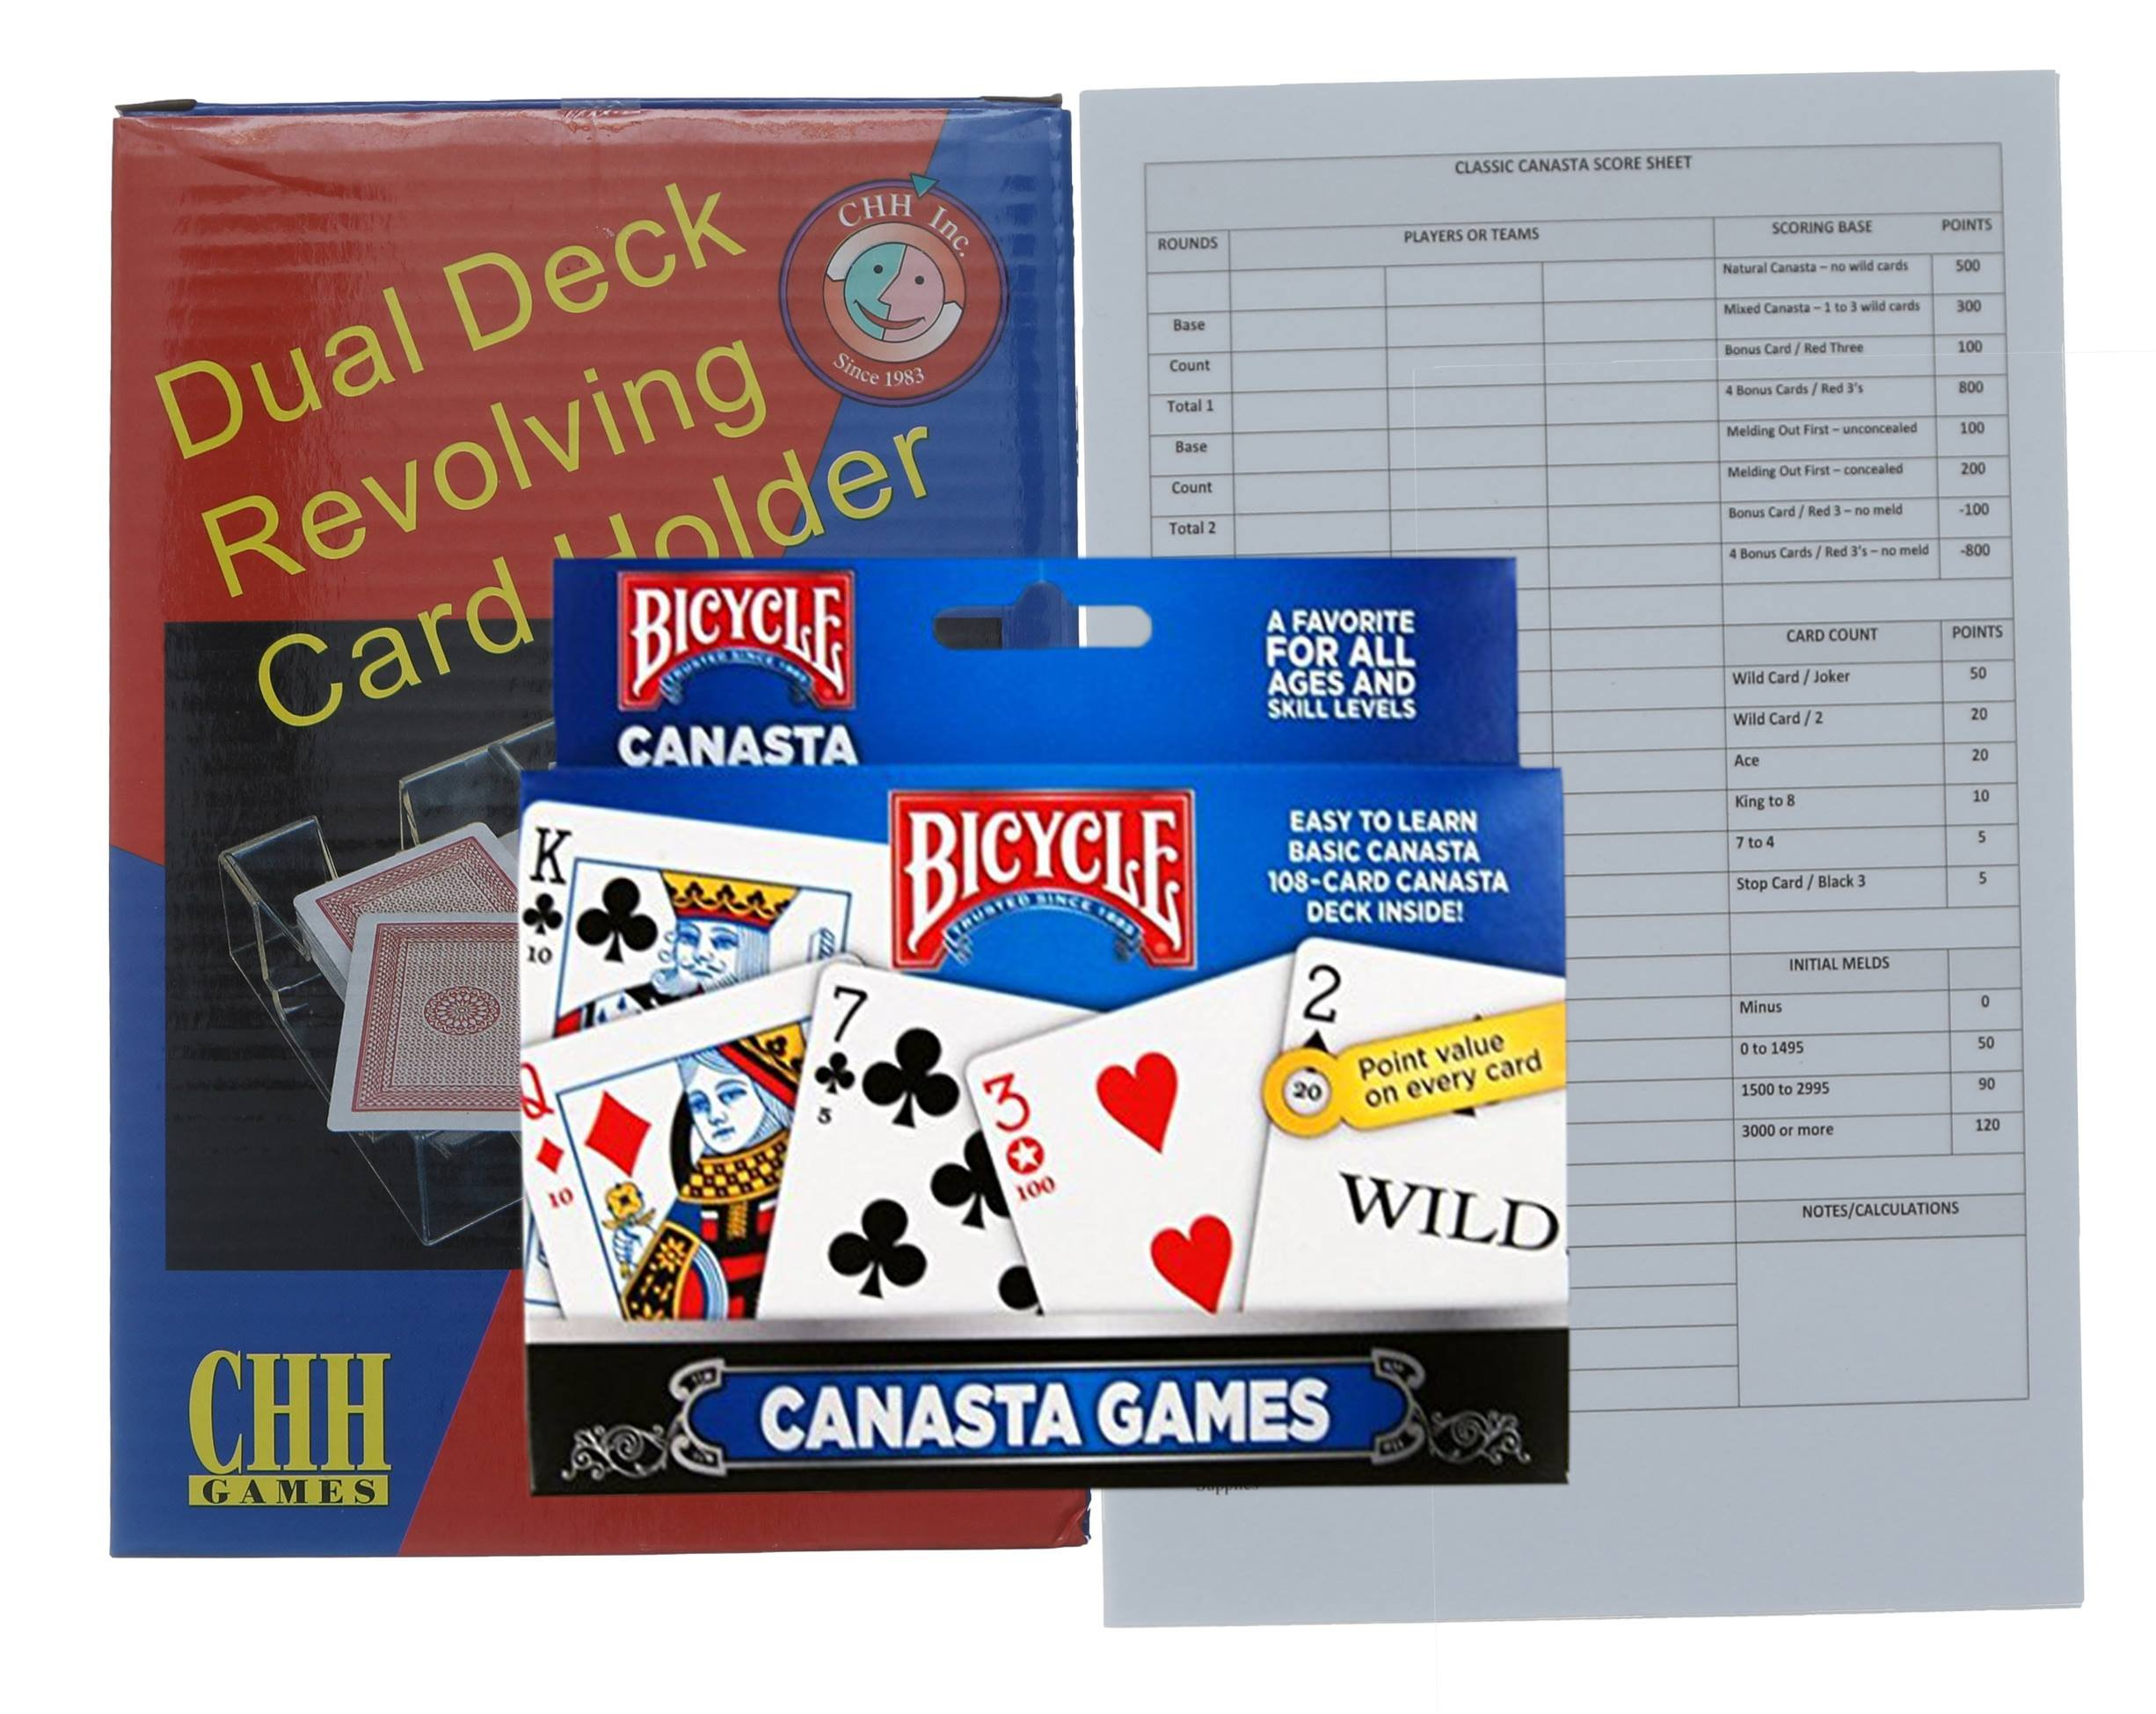 Canasta Playing Cards Game Set. Includes a Revolving Tray, Holder, 2 Deck of Canasta Cards with Point Values, and 50 Score Pads.